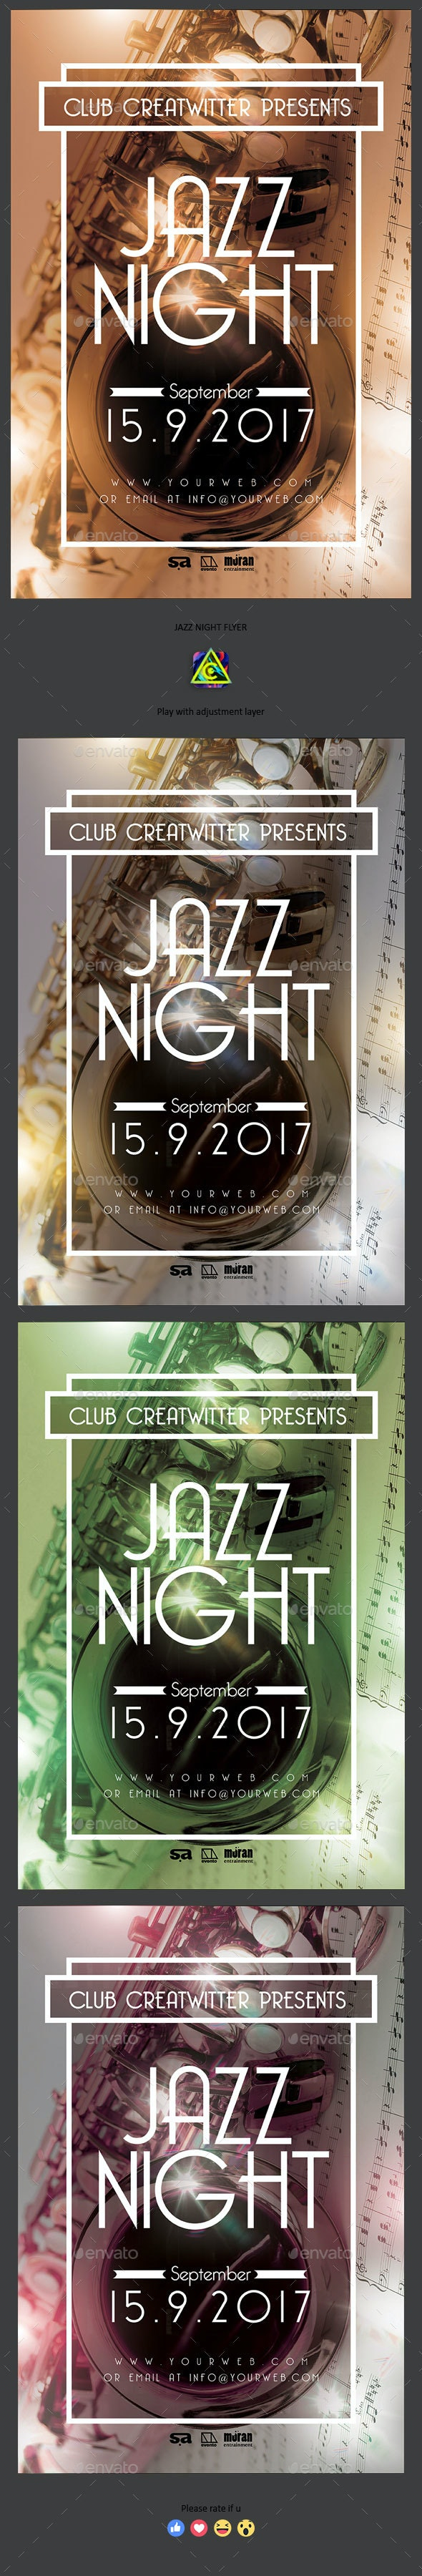 Jazz Night Flyer - Clubs & Parties Events